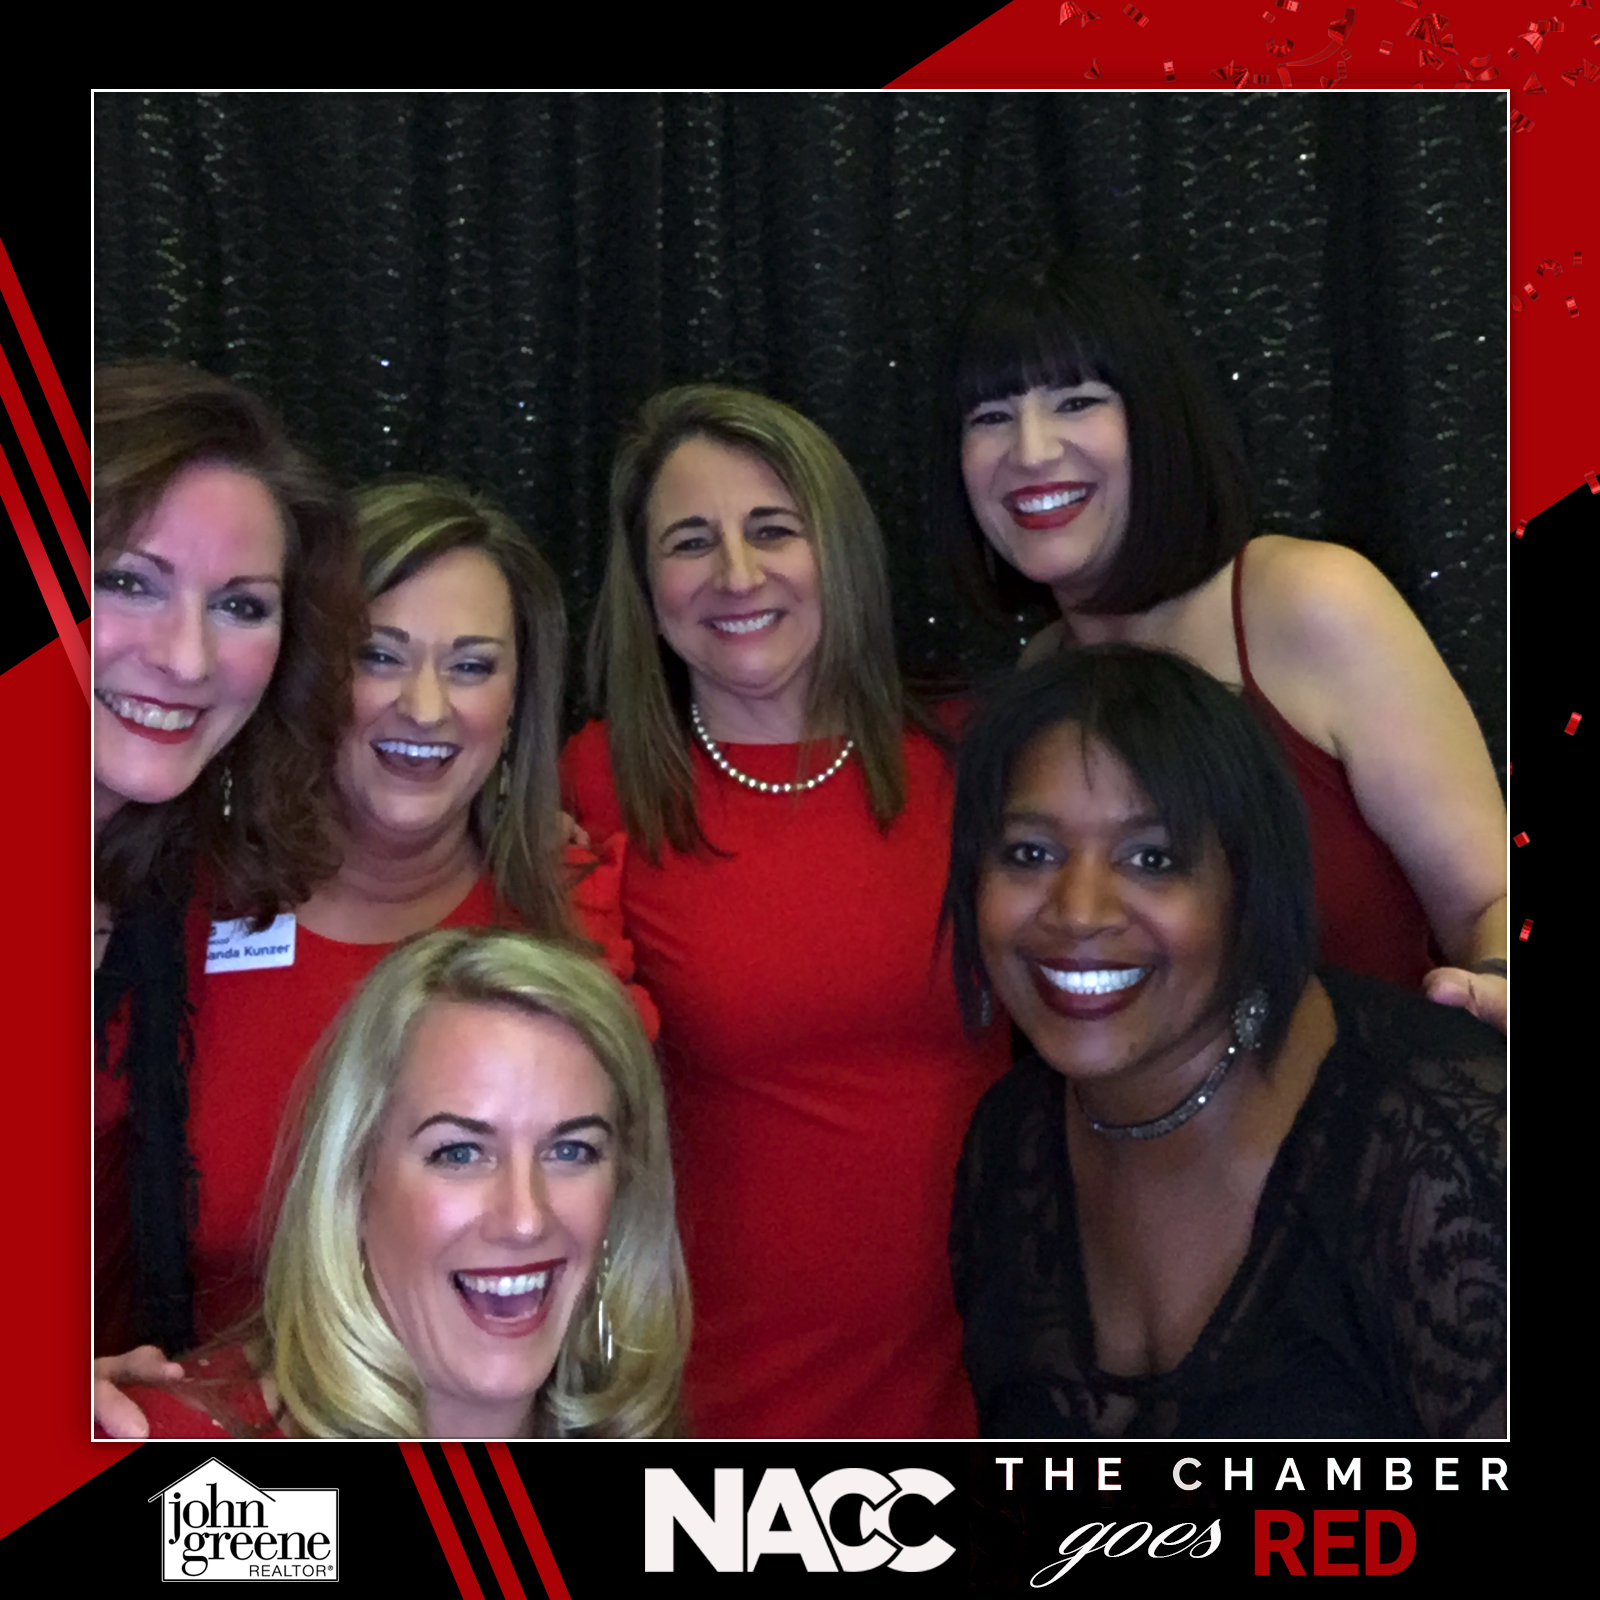 Chamber goes Red | View more photos from the event at events.alfrescophoto.com/u/AlfrescoPhoto/Chamber-goes-Red